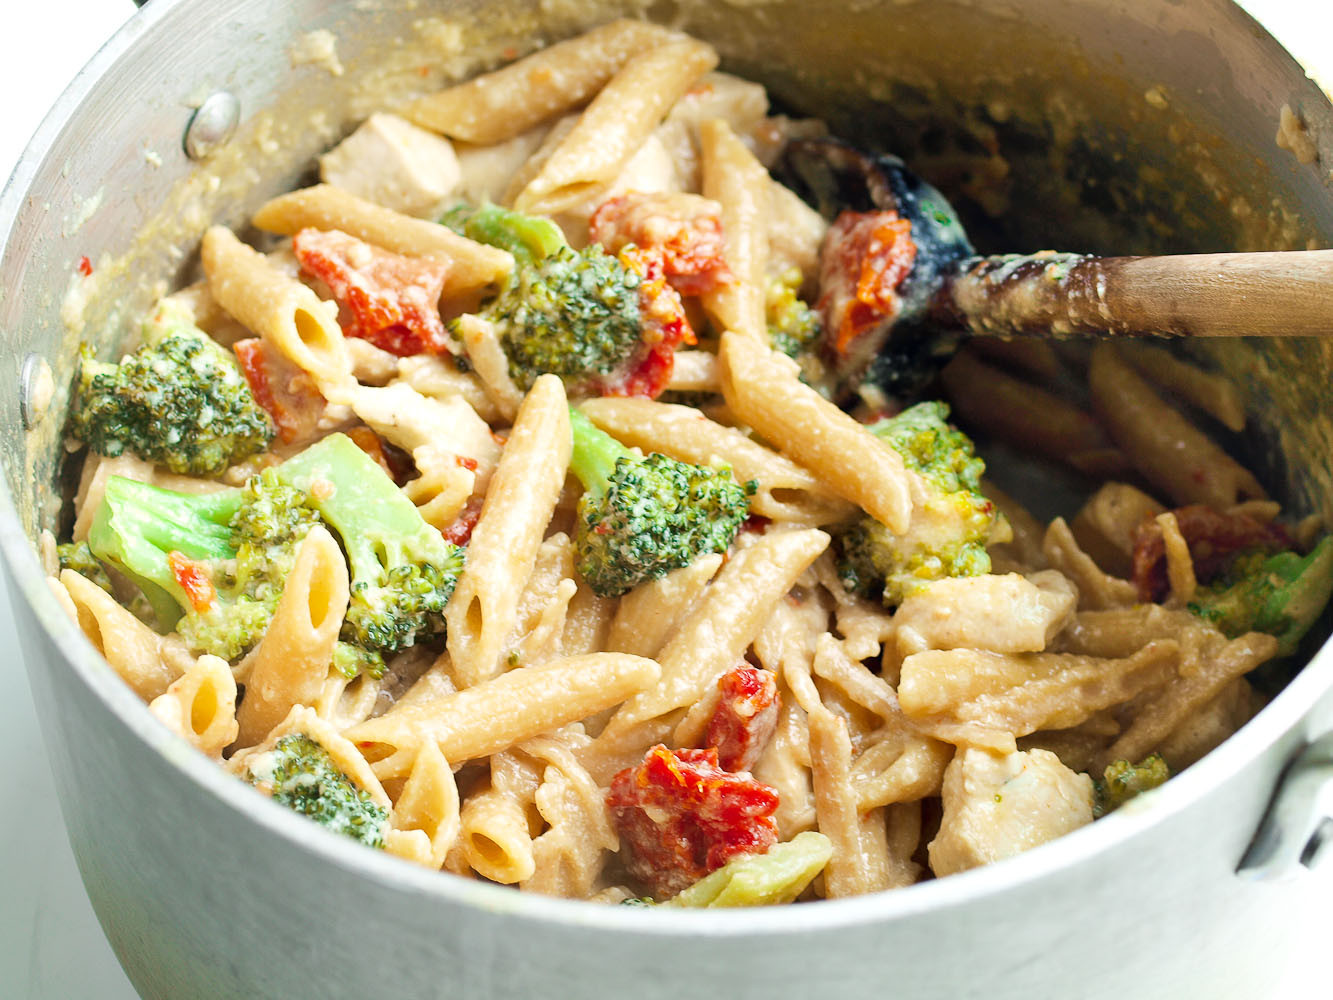 Healthy Dinner Recipes Easy  Tangy e Pot Chicken and Veggie Pasta Dinner